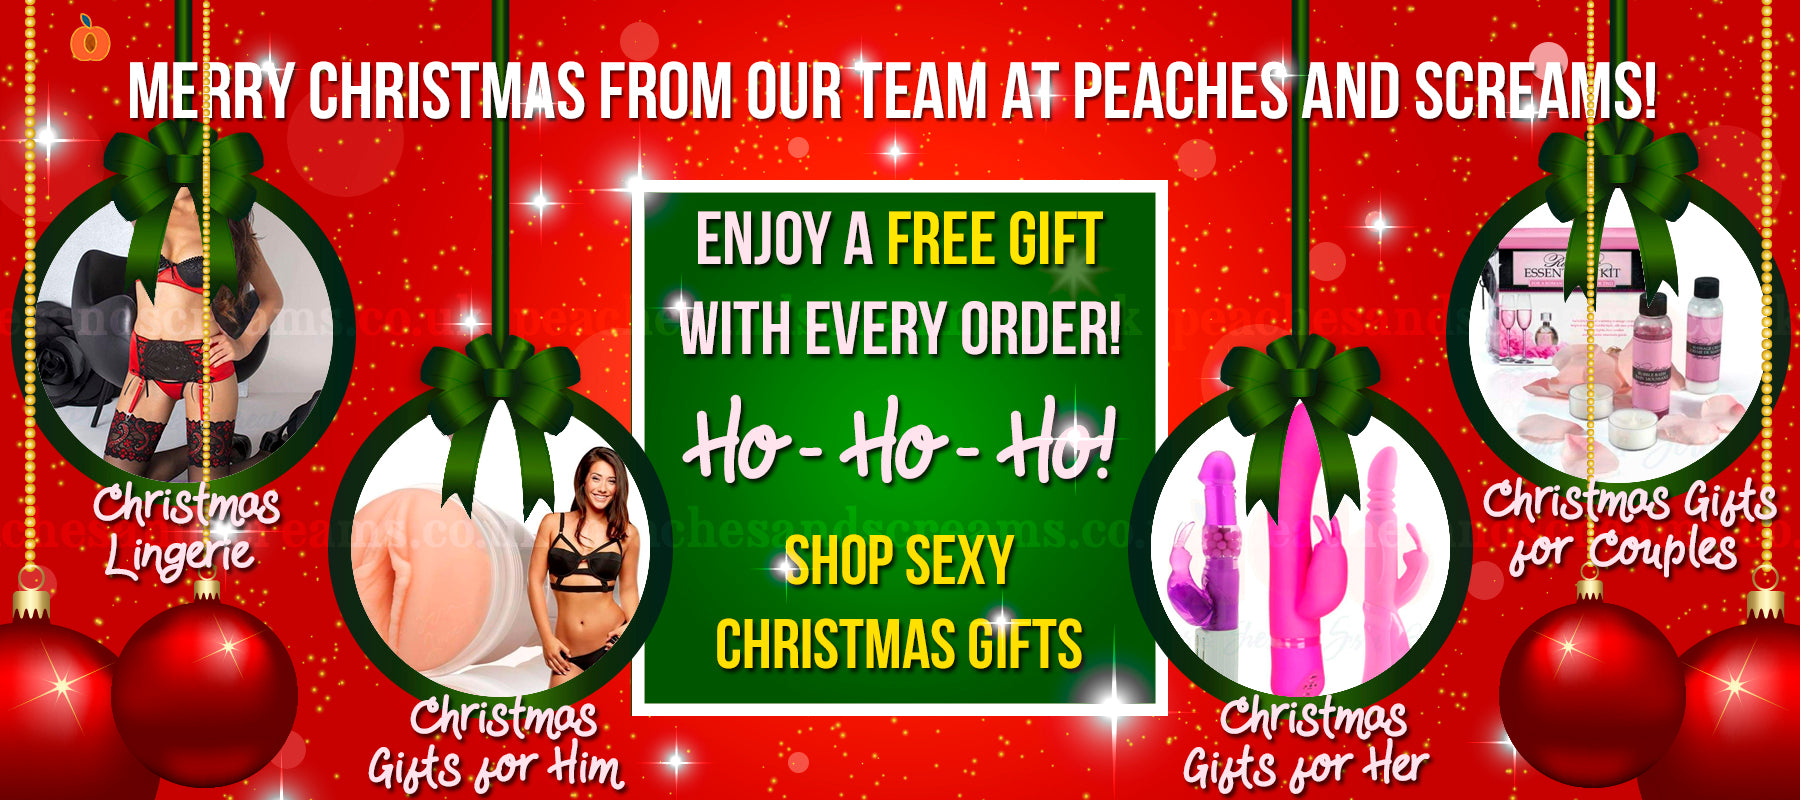 Peaches and Screams Sexy Christmas Gifts